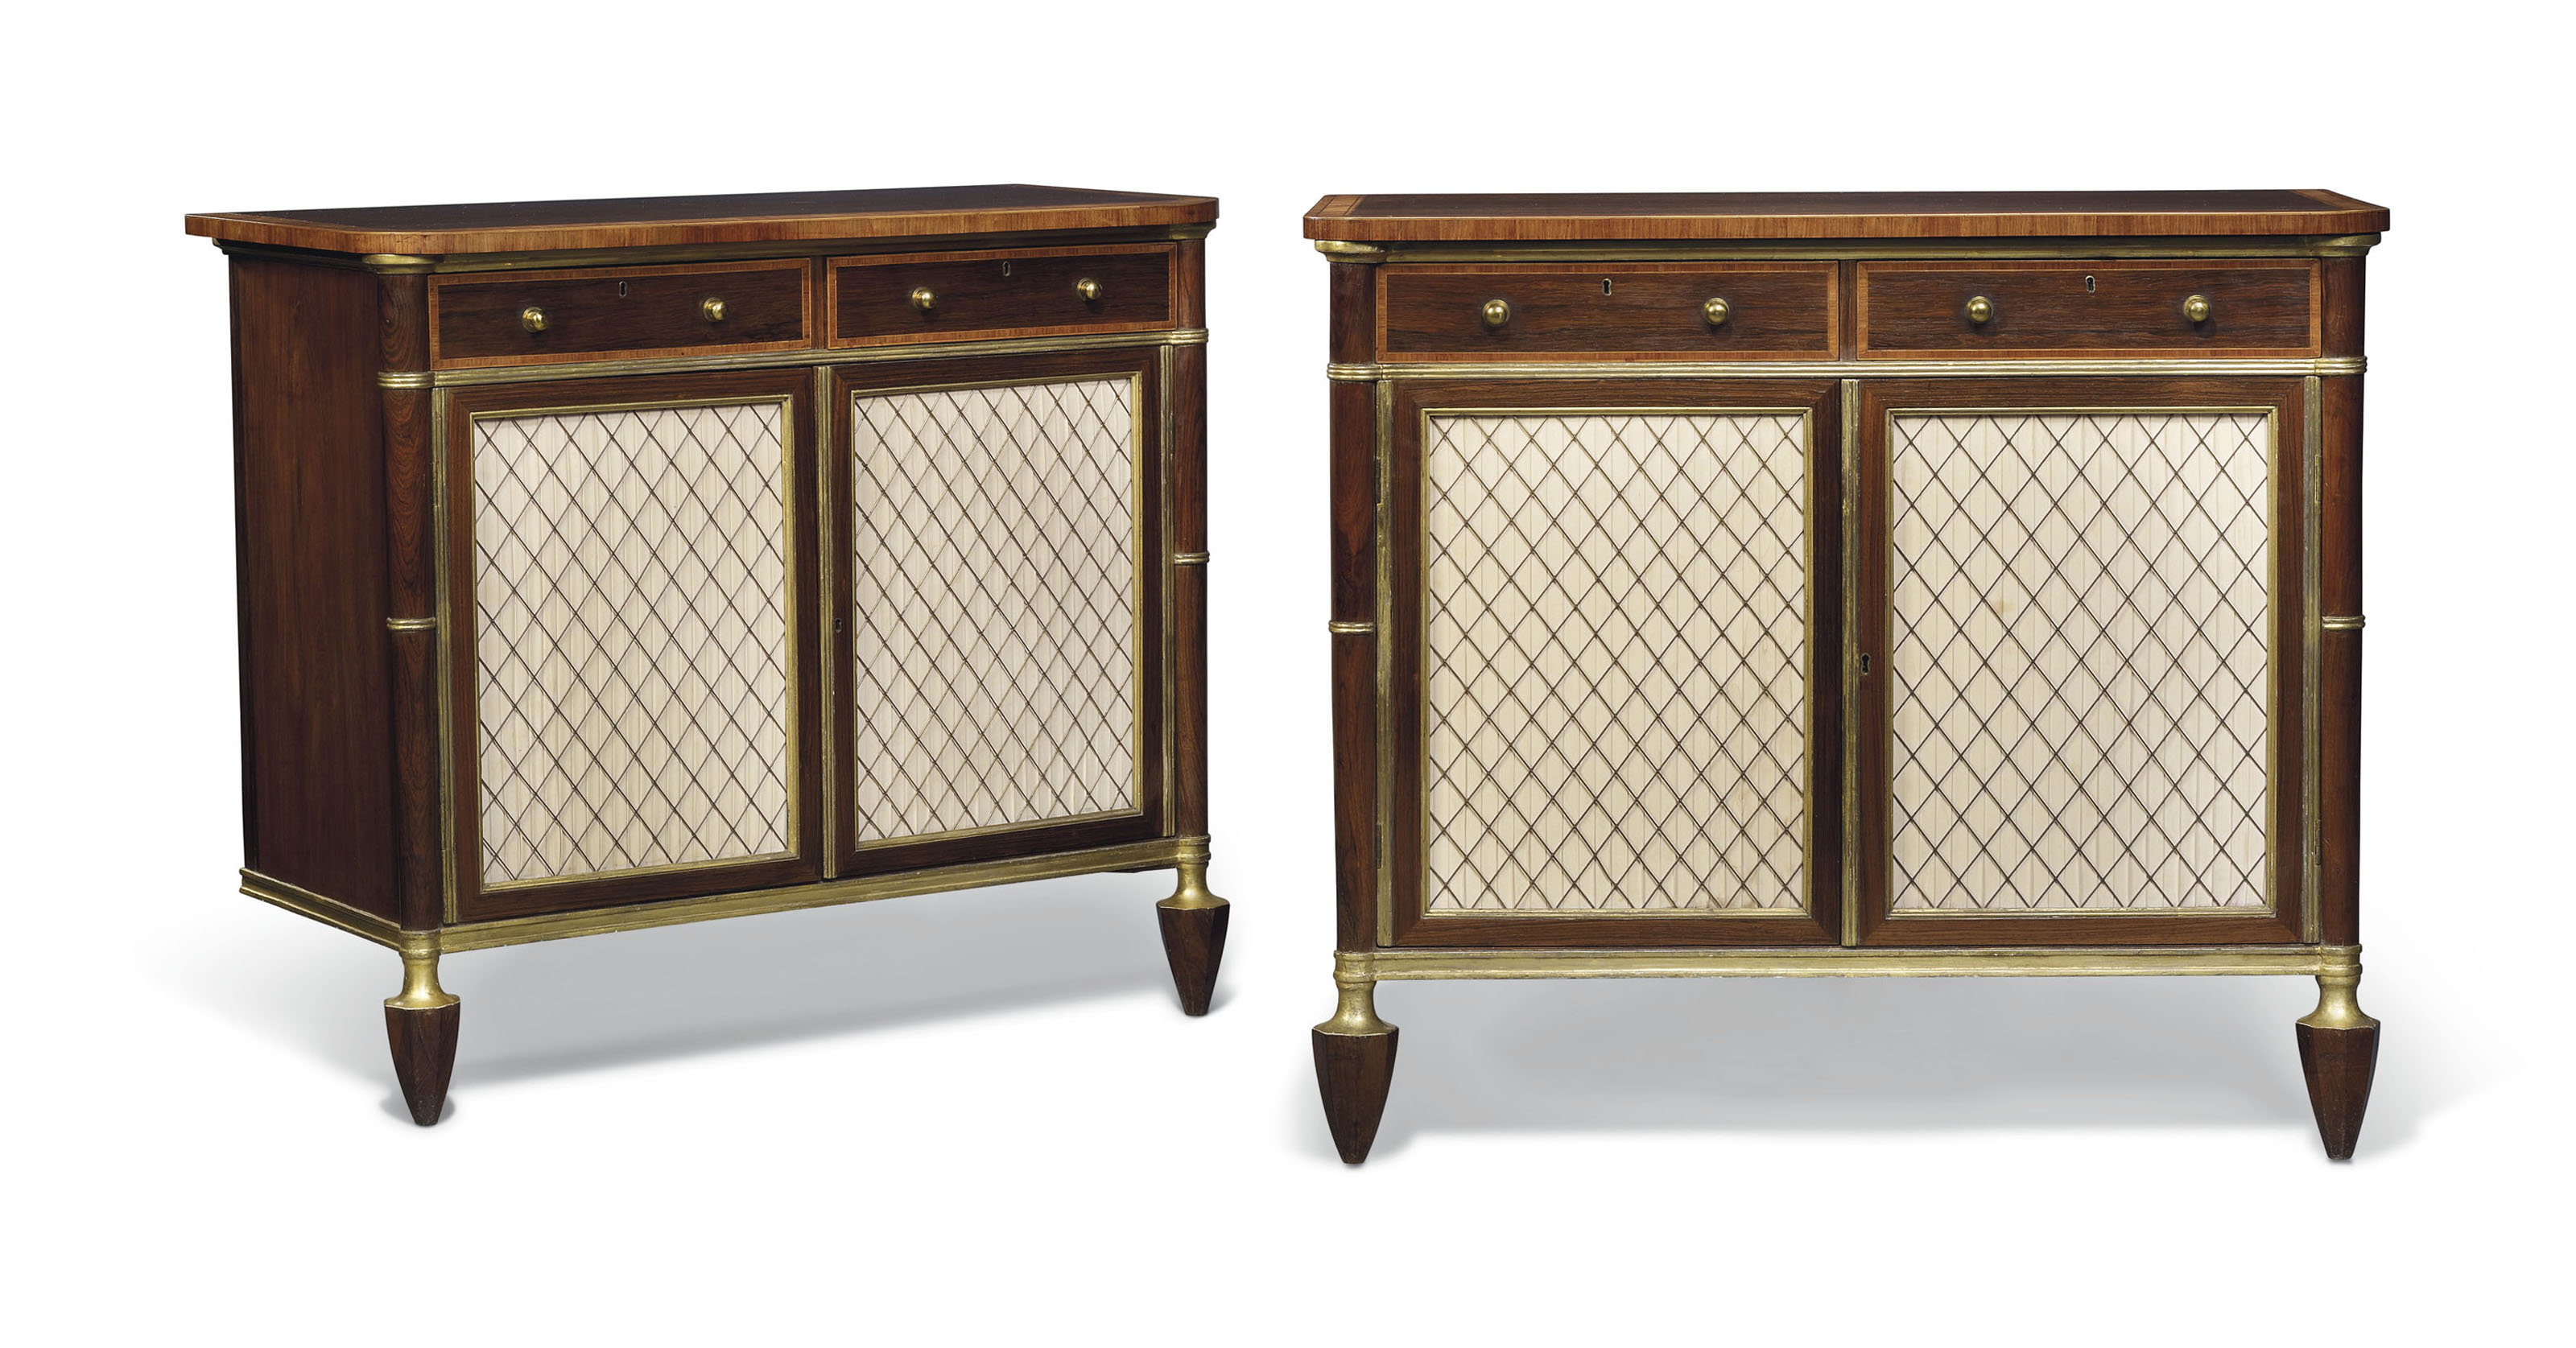 A PAIR OF REGENCY INDIAN ROSEWOOD, SATINWOOD AND TULIPWOOD-CROSSBANDED AND PARCEL-GILT SIDE CABINETS